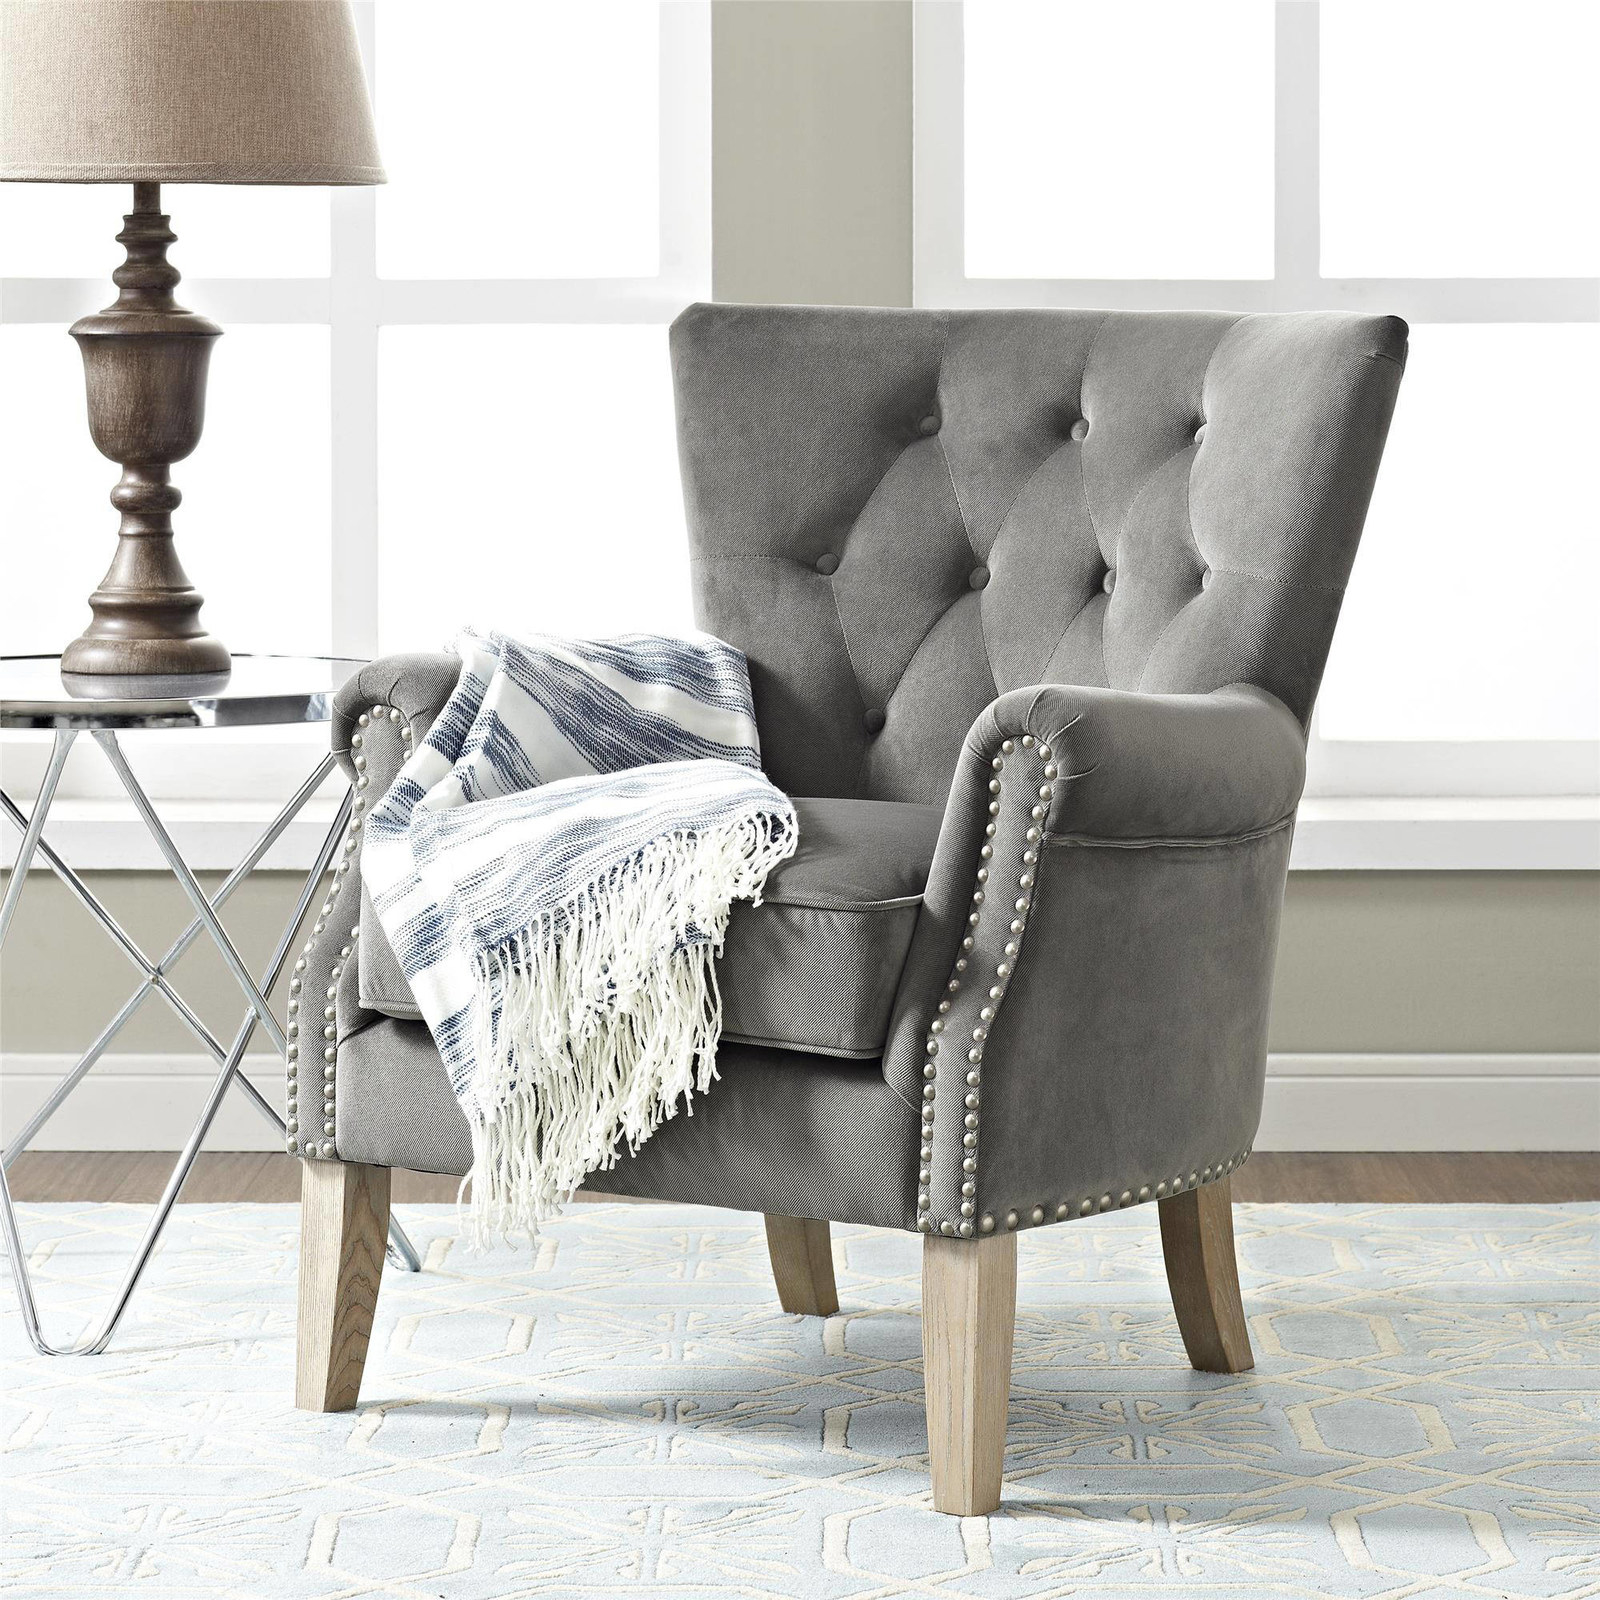 """Promising review: """"Perfect size for bedroom corner accent chair. Nice, plush seat cushion, construction seems very sturdy, solid. Beautiful, soft, luxurious feel to the fabric. It matches my bedroom furniture perfectly. Came fully assembled except for chair legs. I'm very happy with my purchase."""" —frugal4funPrice: $169 (available in two colors)"""